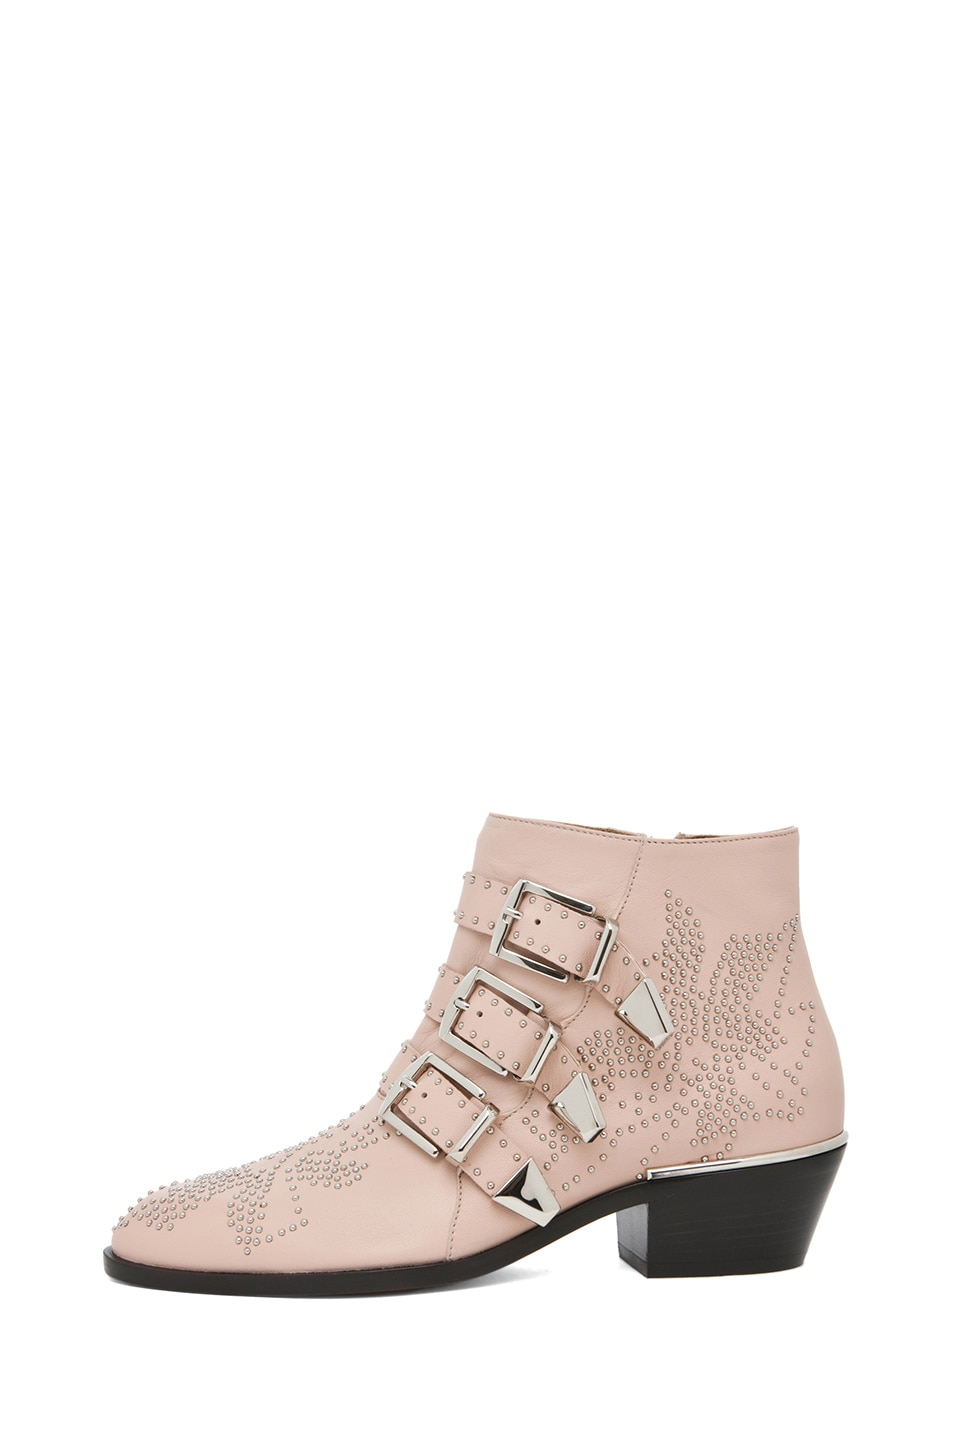 Image 1 of Chloe Susanna Leather Studded Bootie in Nude Pink